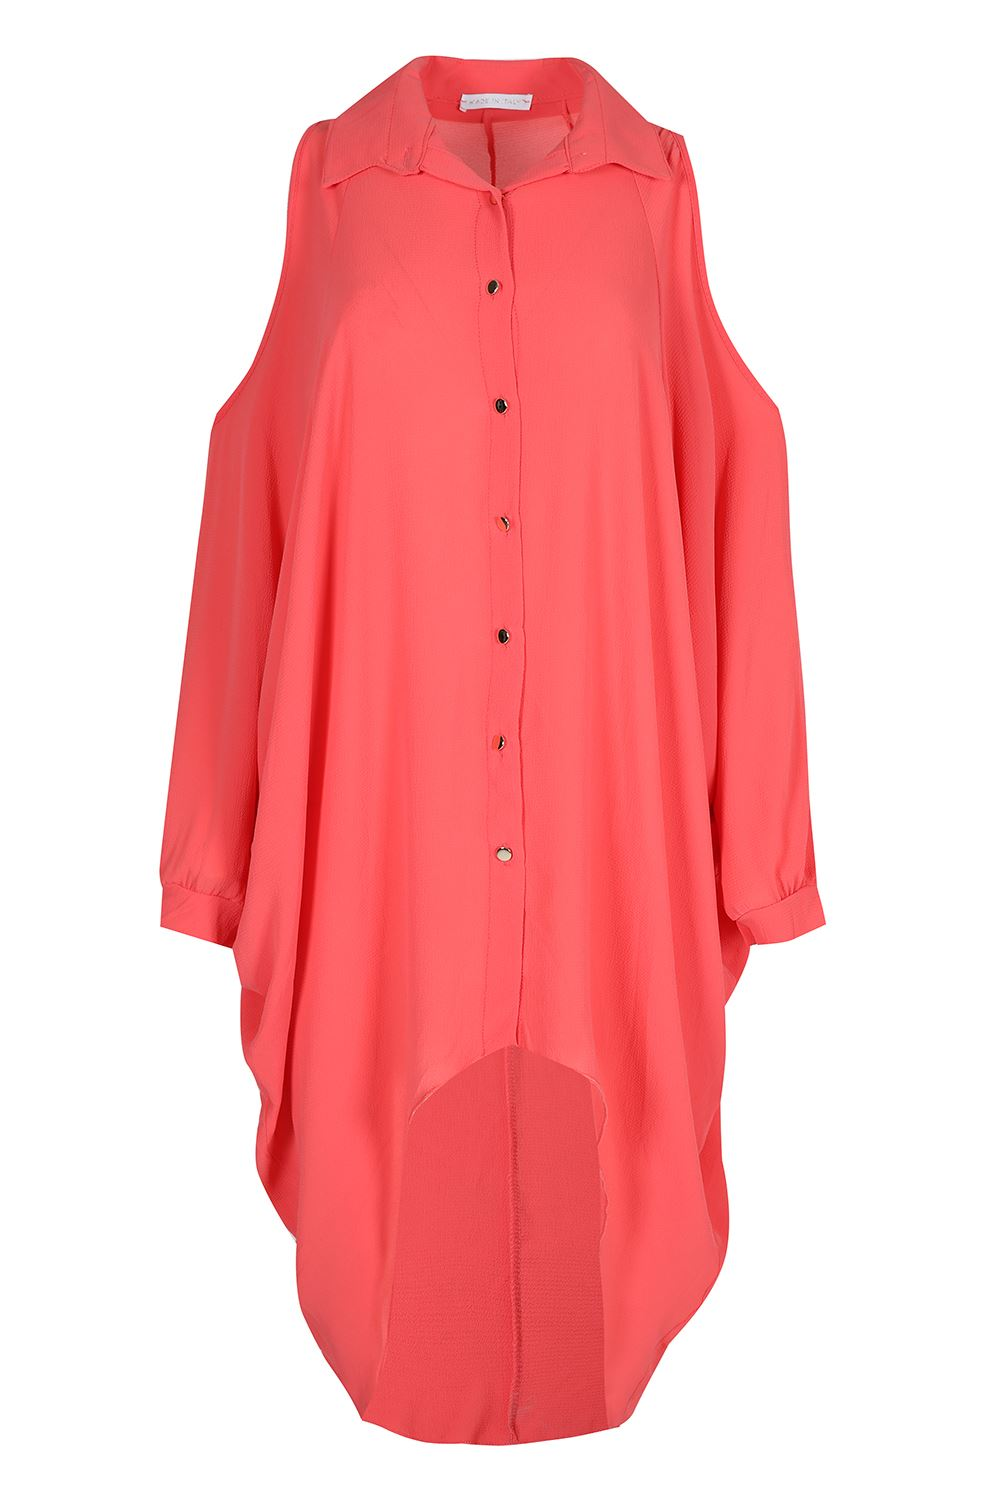 Find great deals on eBay for womens baggy shirts. Shop with confidence.